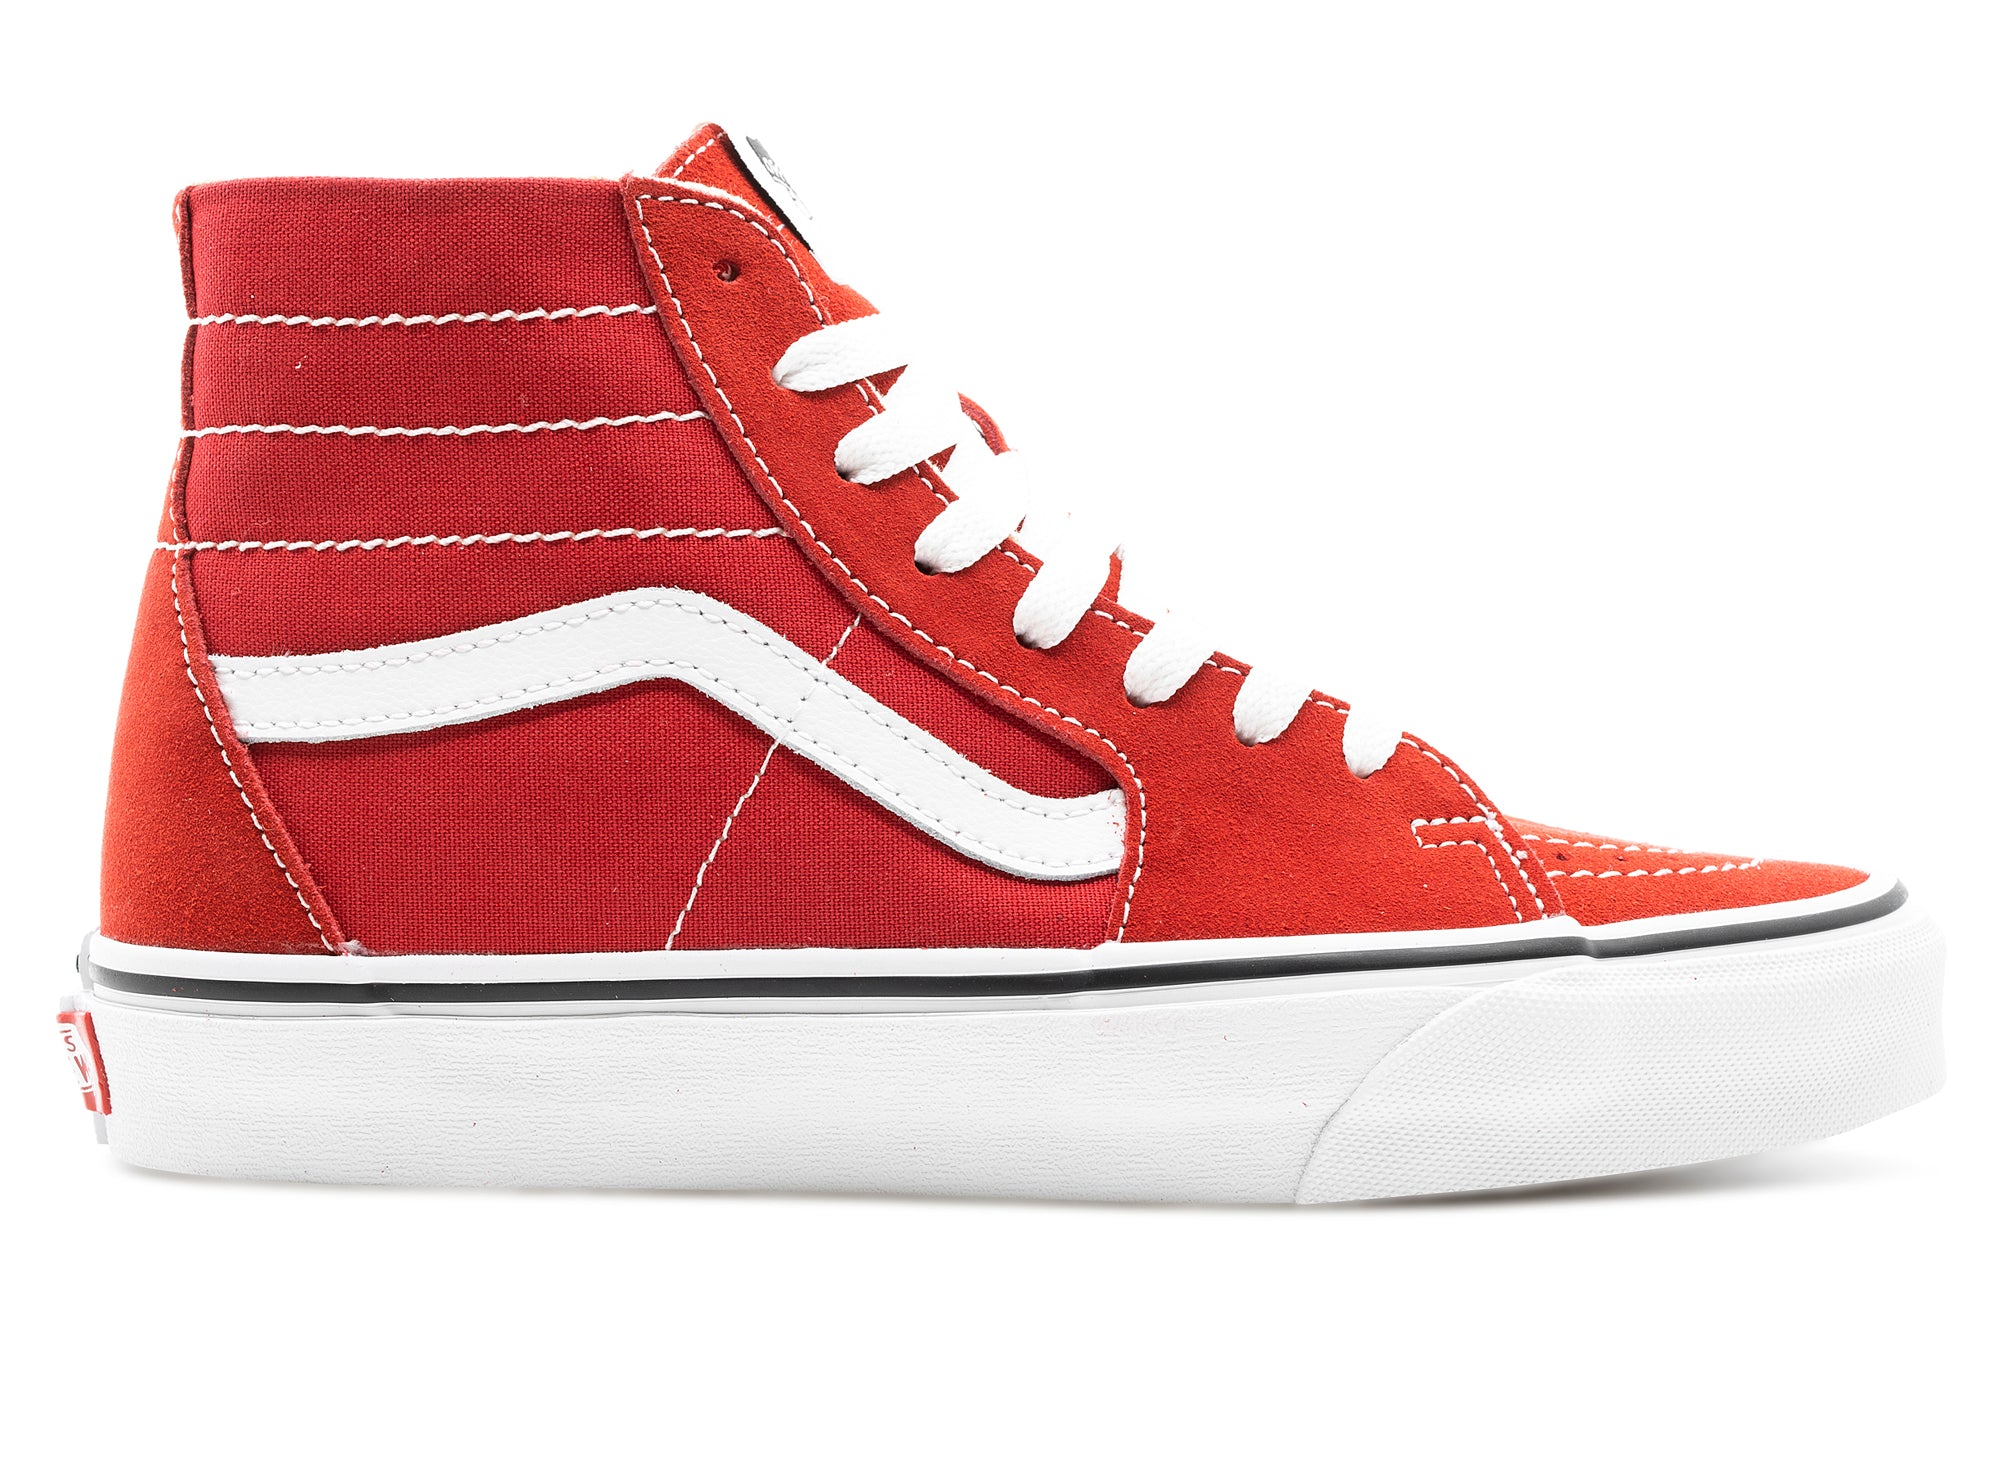 Women's Vans Sk8-Hi Tapered 'Racing Red' xld